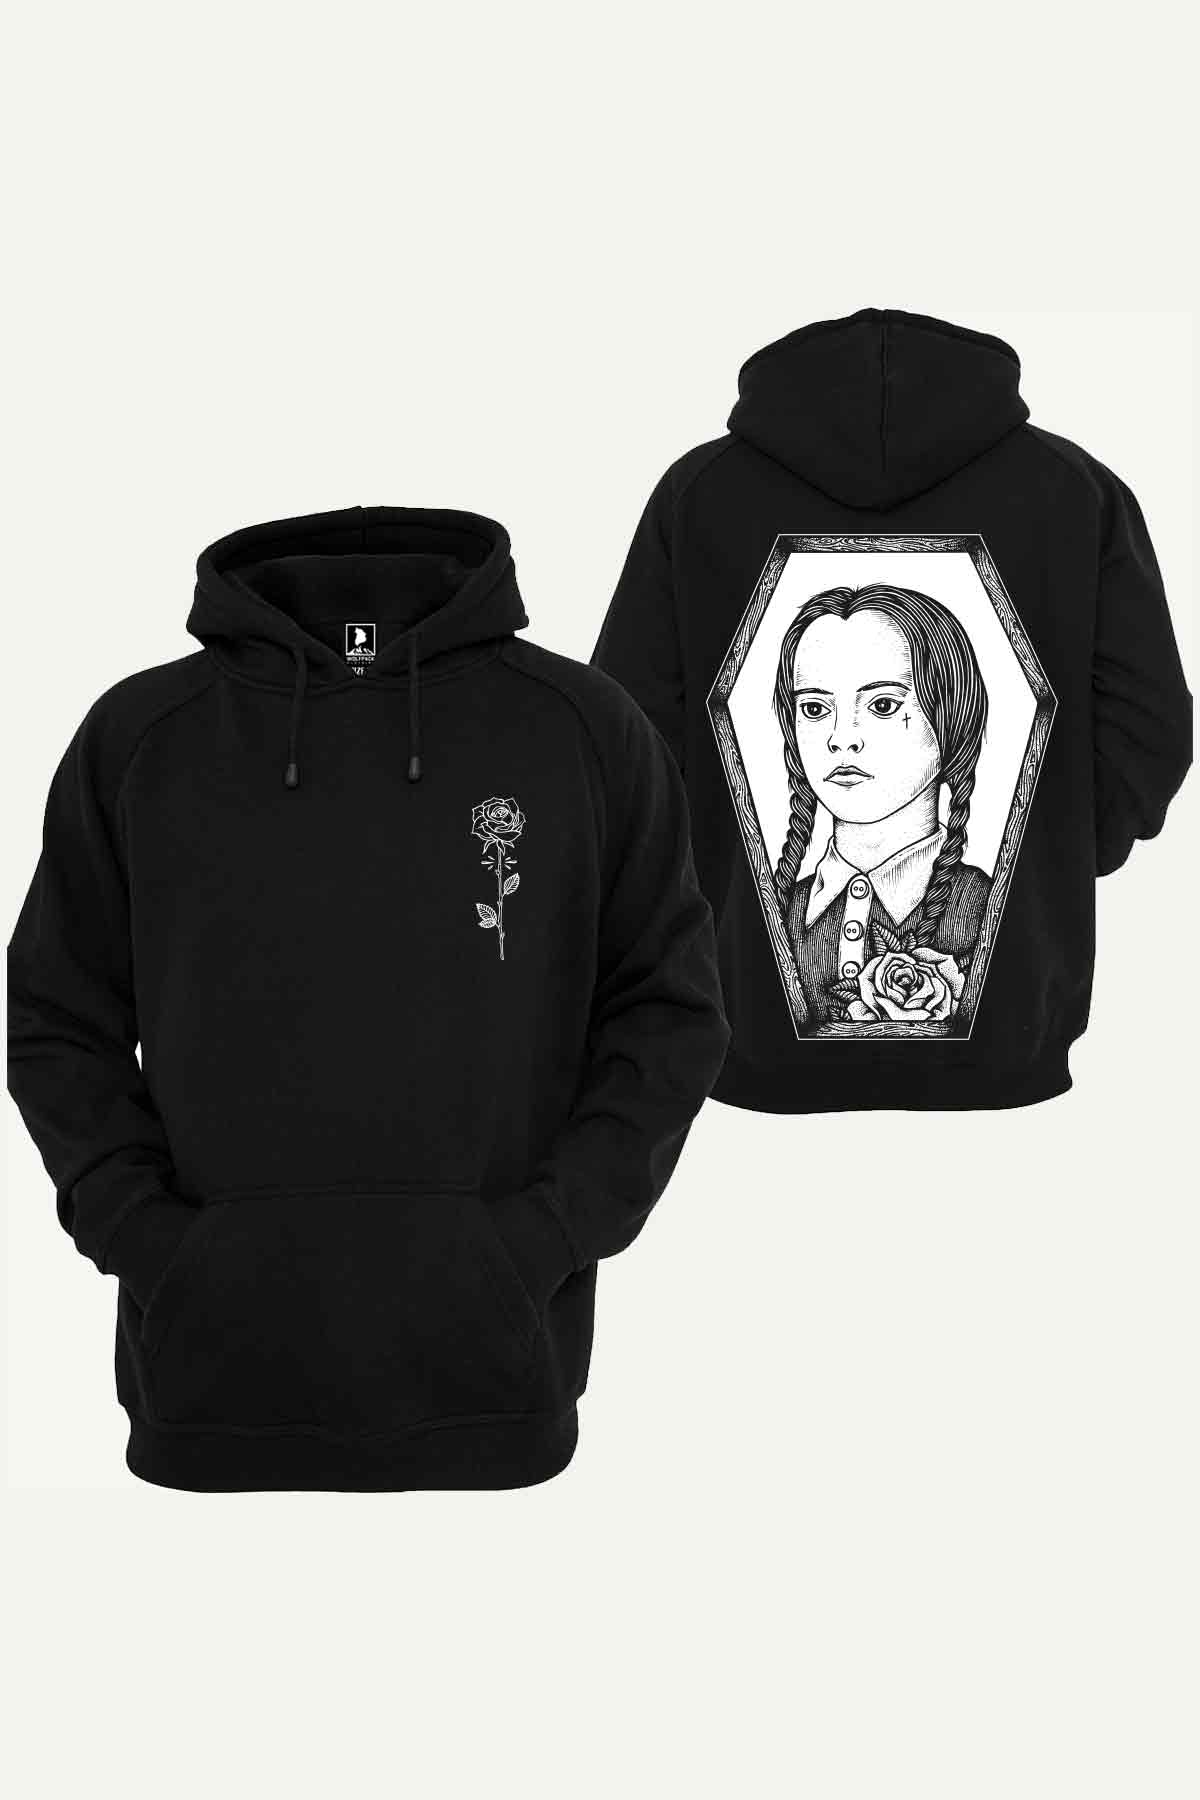 POISONED ROSE HOODIE BLACK UNISEX